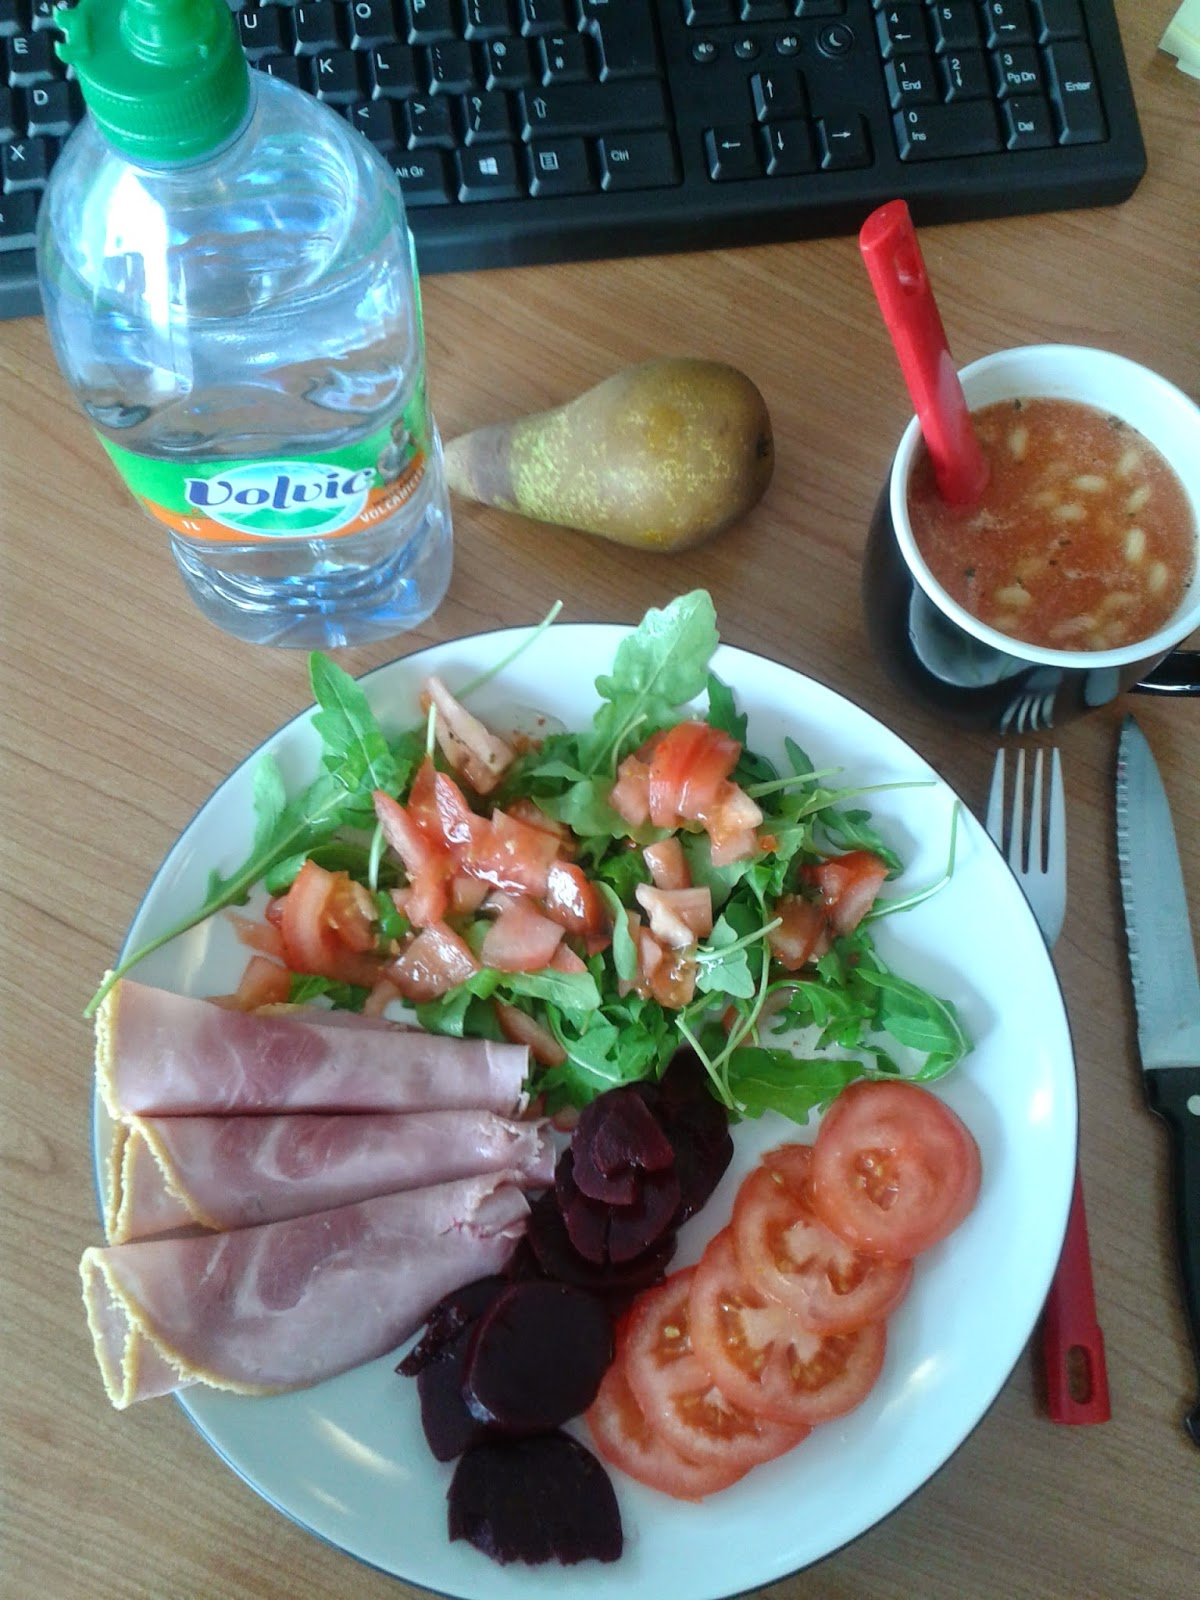 Slimming world lunch ideas at work